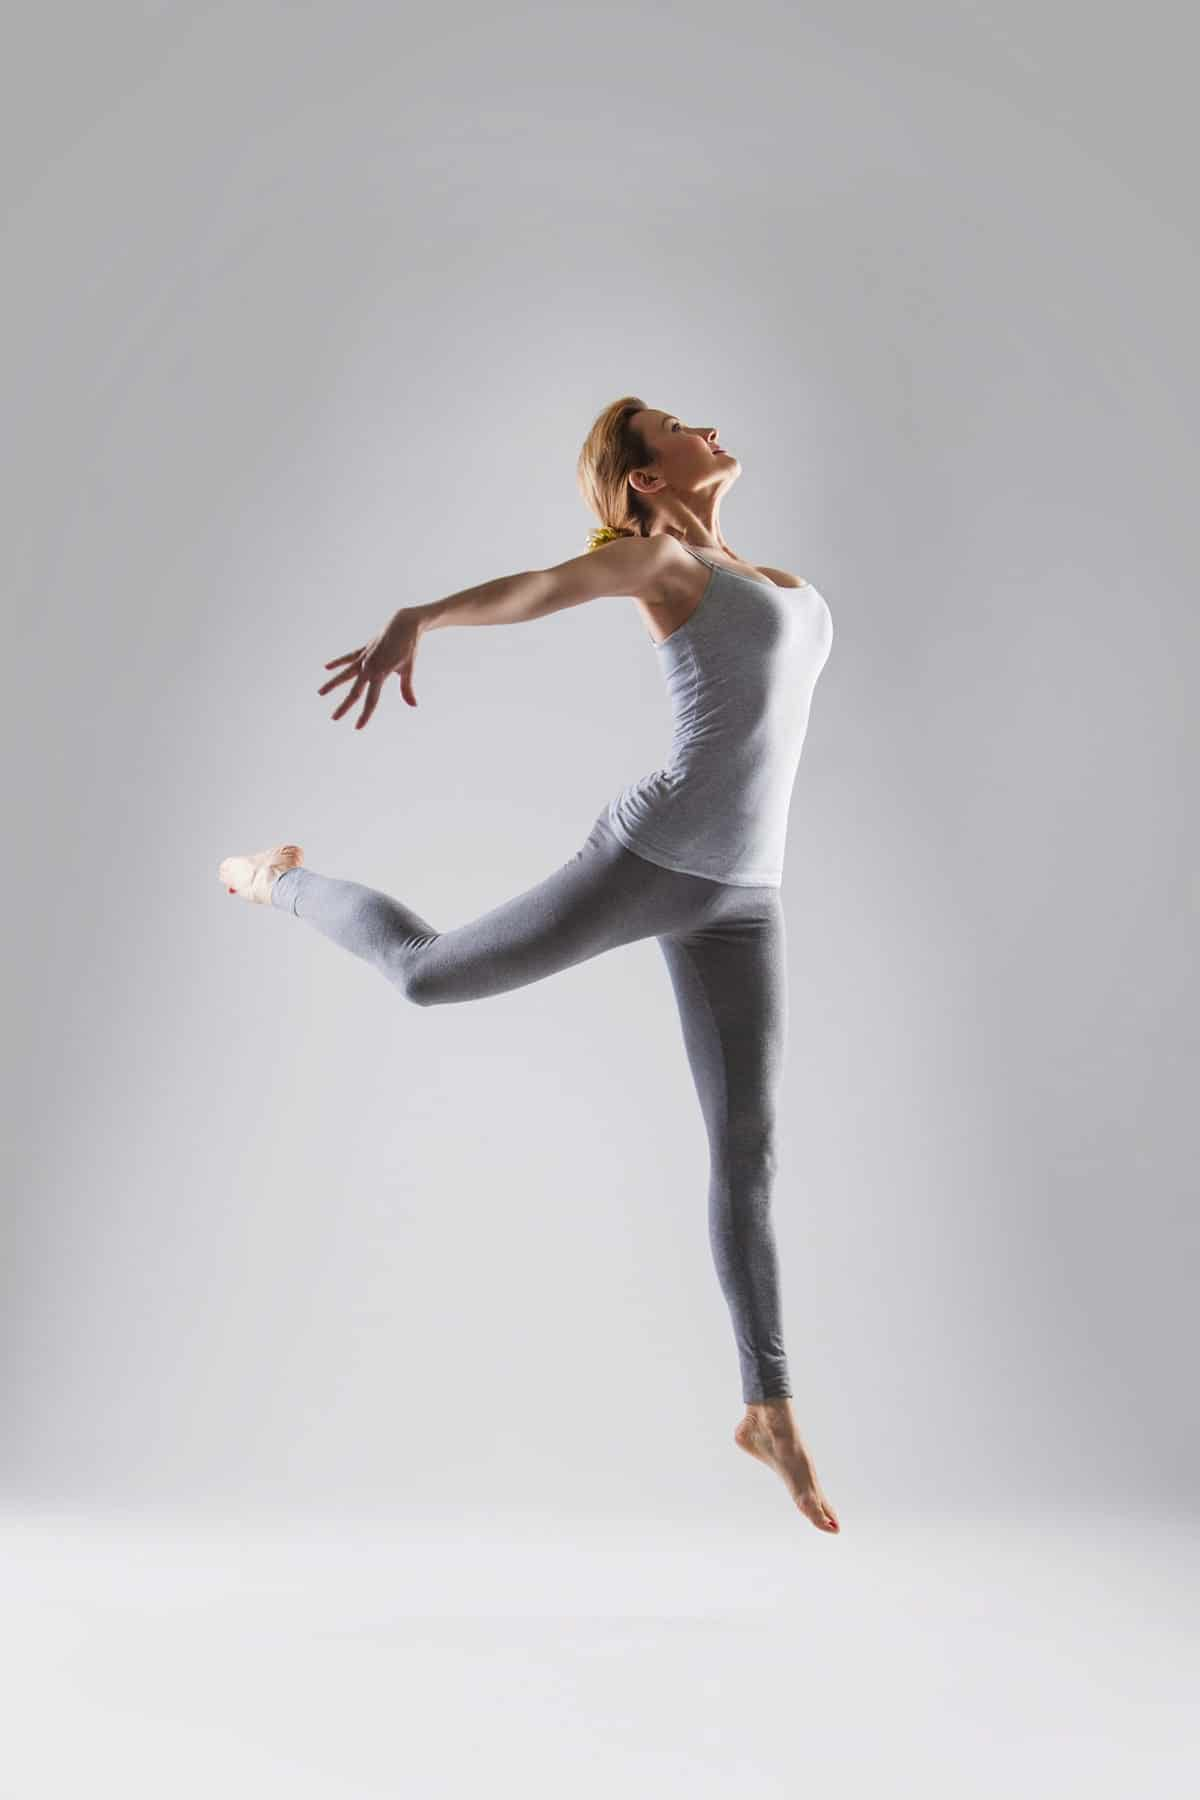 Sporty beautiful ballet dancer woman posing on a grey background